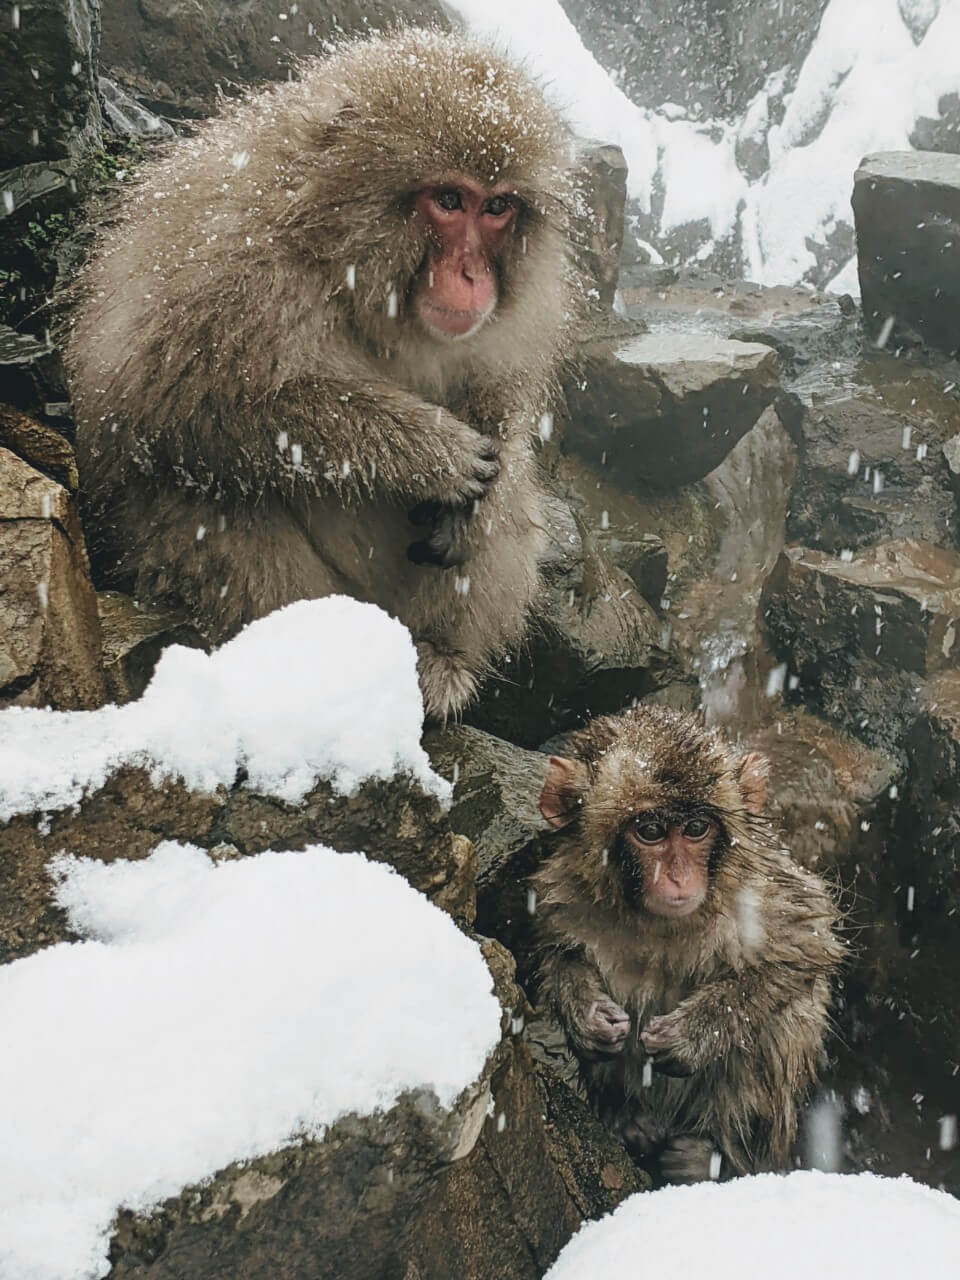 jigokudani-monkey-park-february-2021